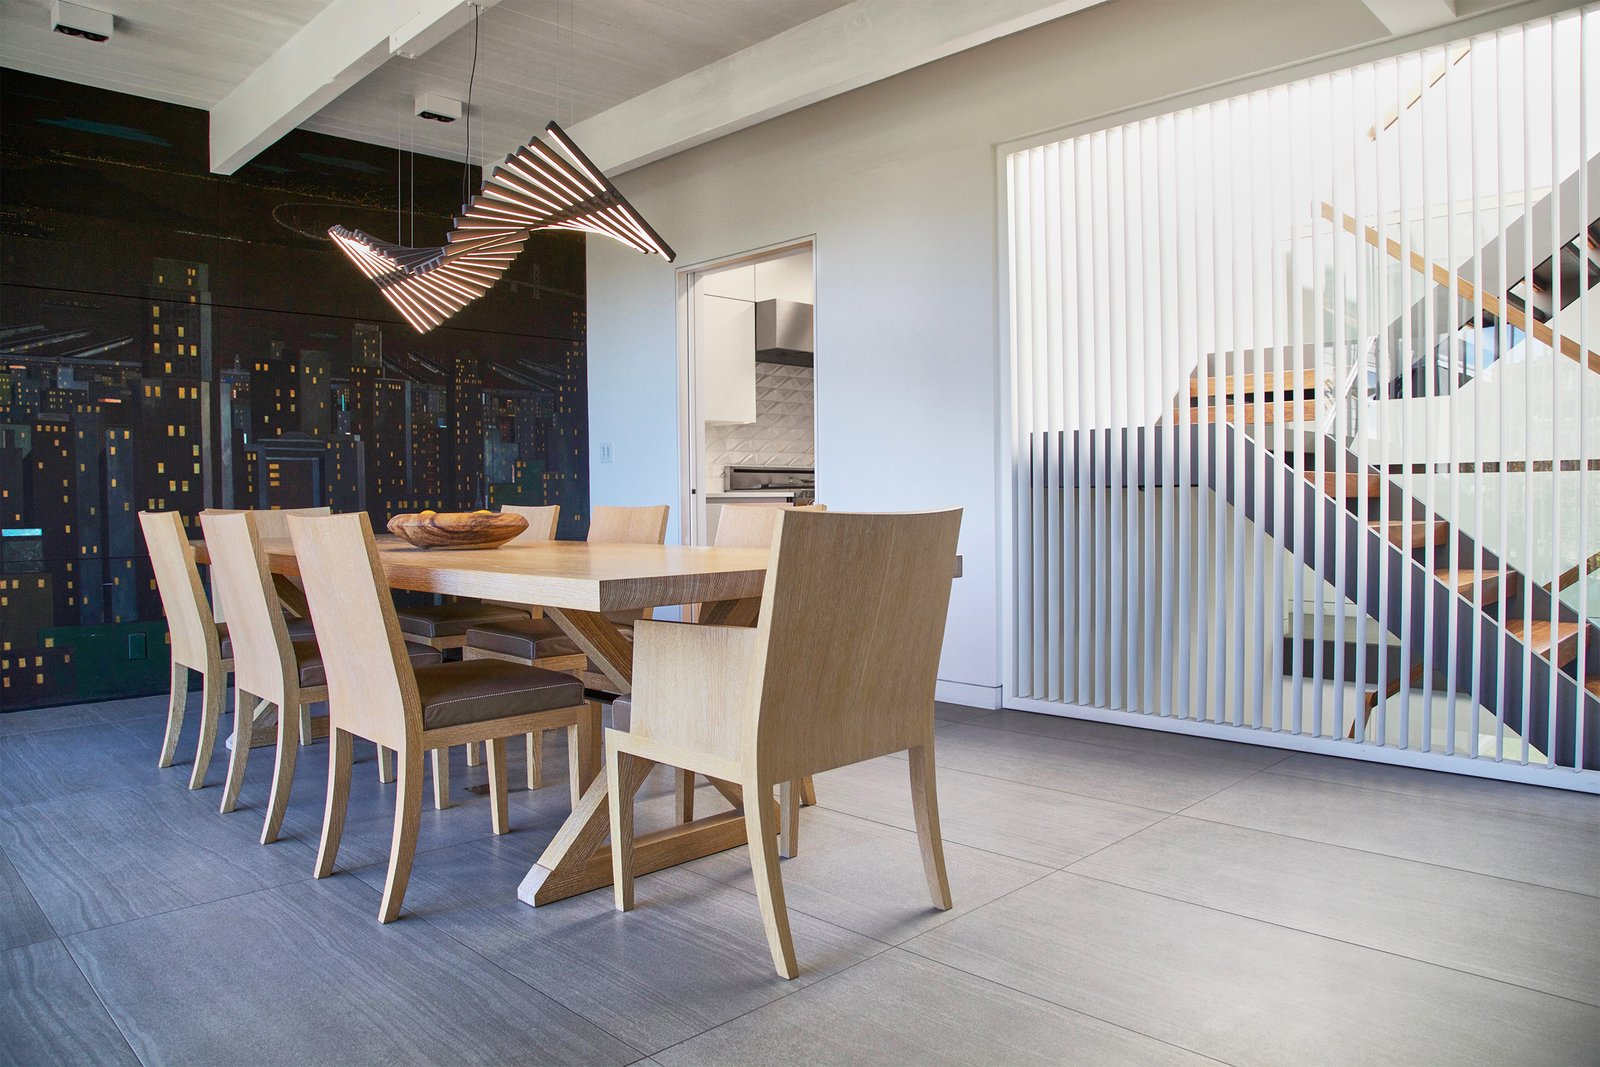 Dining Room - operable louvers at stair, original Jose Moya del Pino cityscape mural, Vibia Rythm light, Hermés table and chairs Tagged: Dining Room, Chair, Table, Ceramic Tile Floor, Accent Lighting, and Track Lighting.  Lyon Residence by Diego Pacheco Design Practice